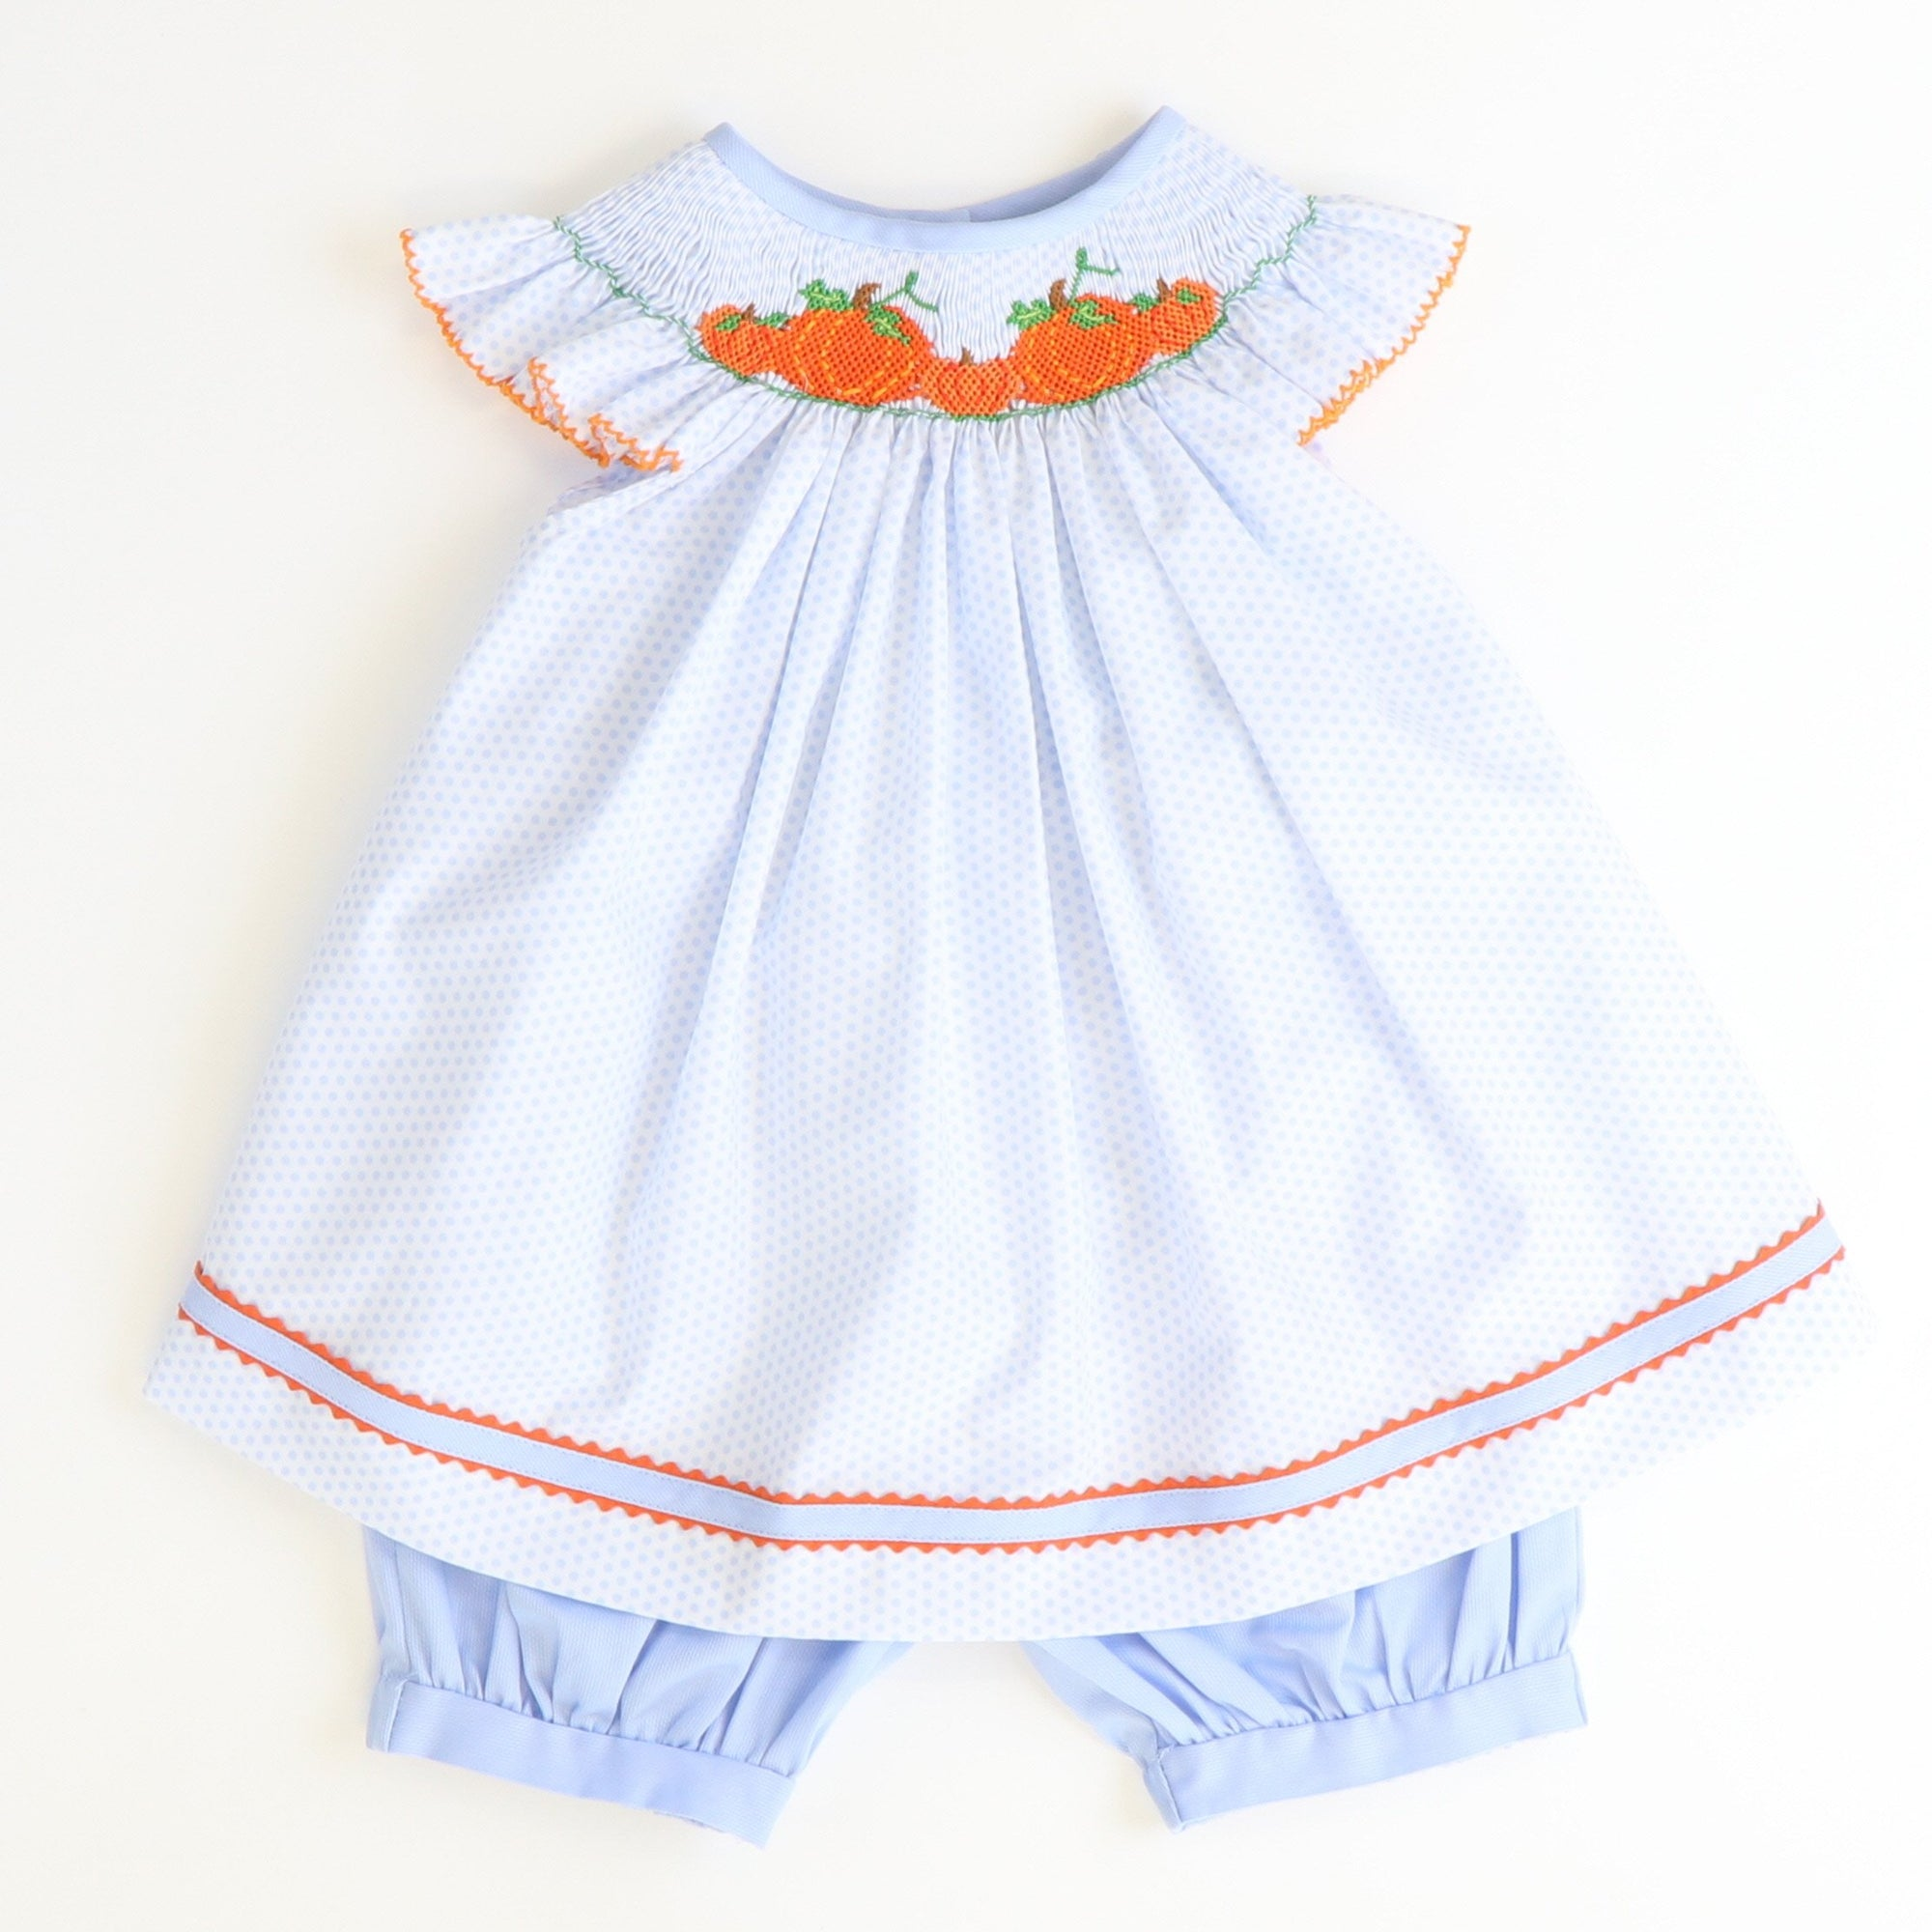 Smocked Pumpkin Patch Top & Bloomer Set - Light Blue Dot